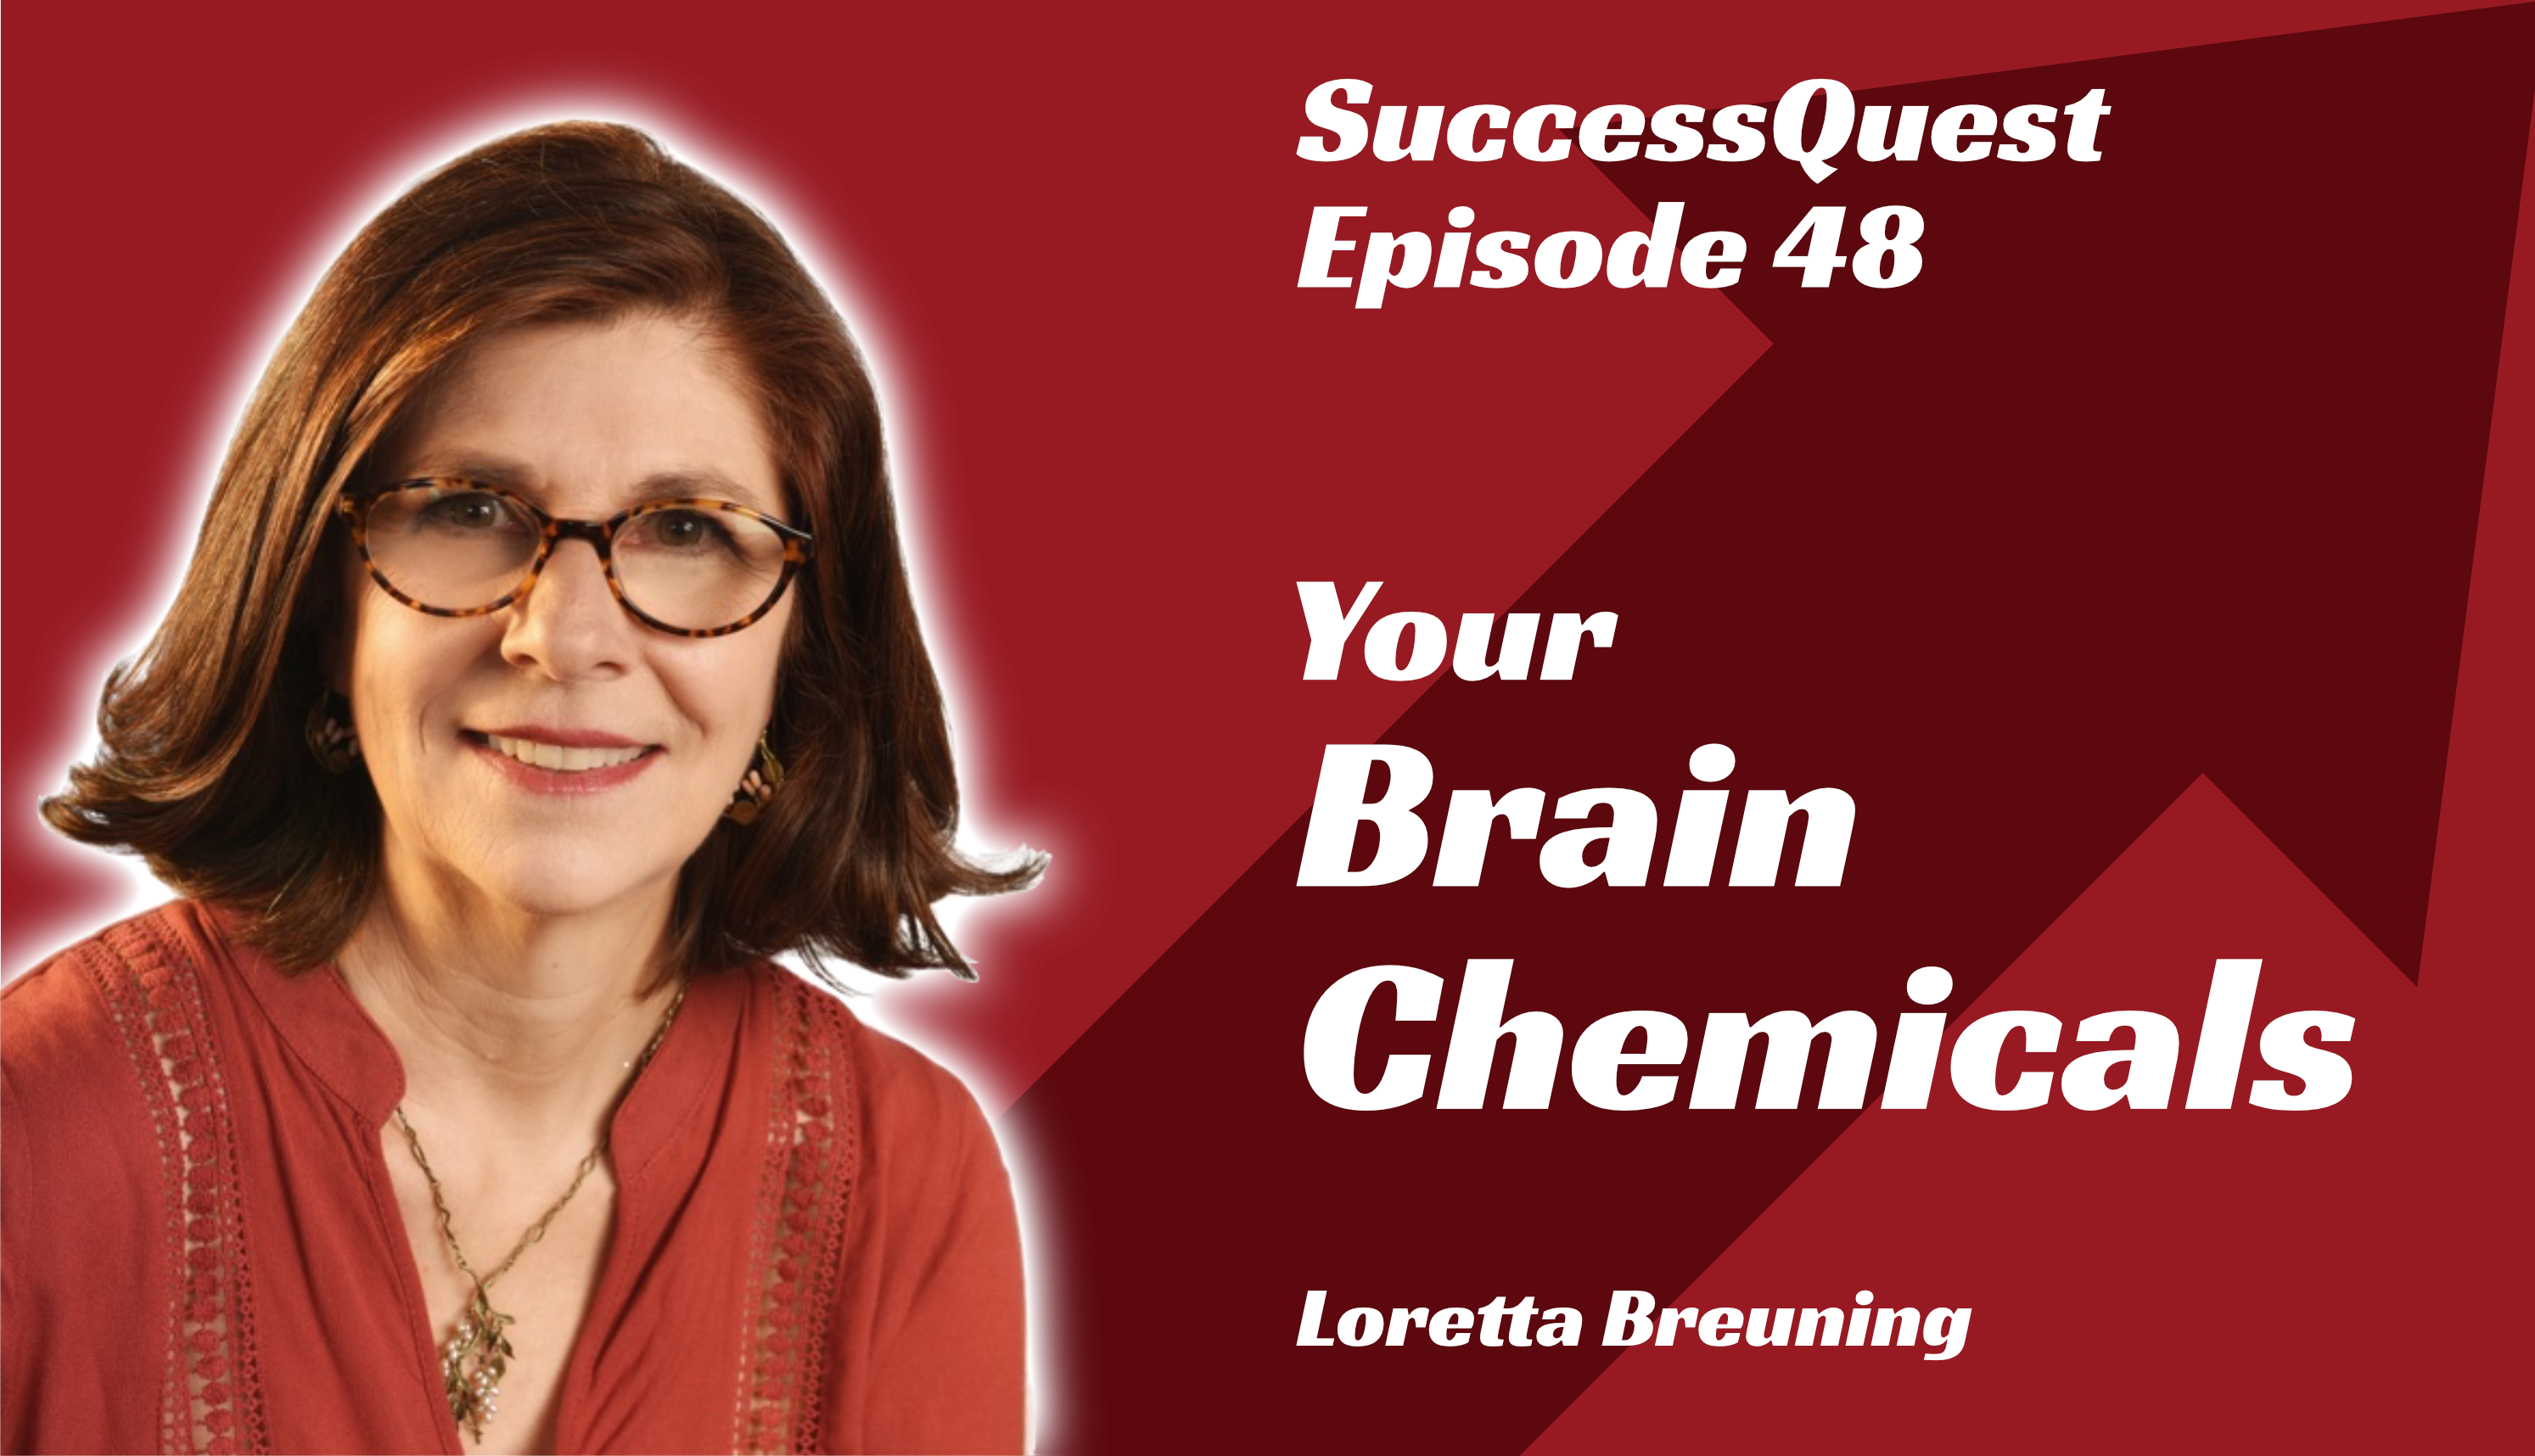 your brain chemicals Loretta Breuning success quest